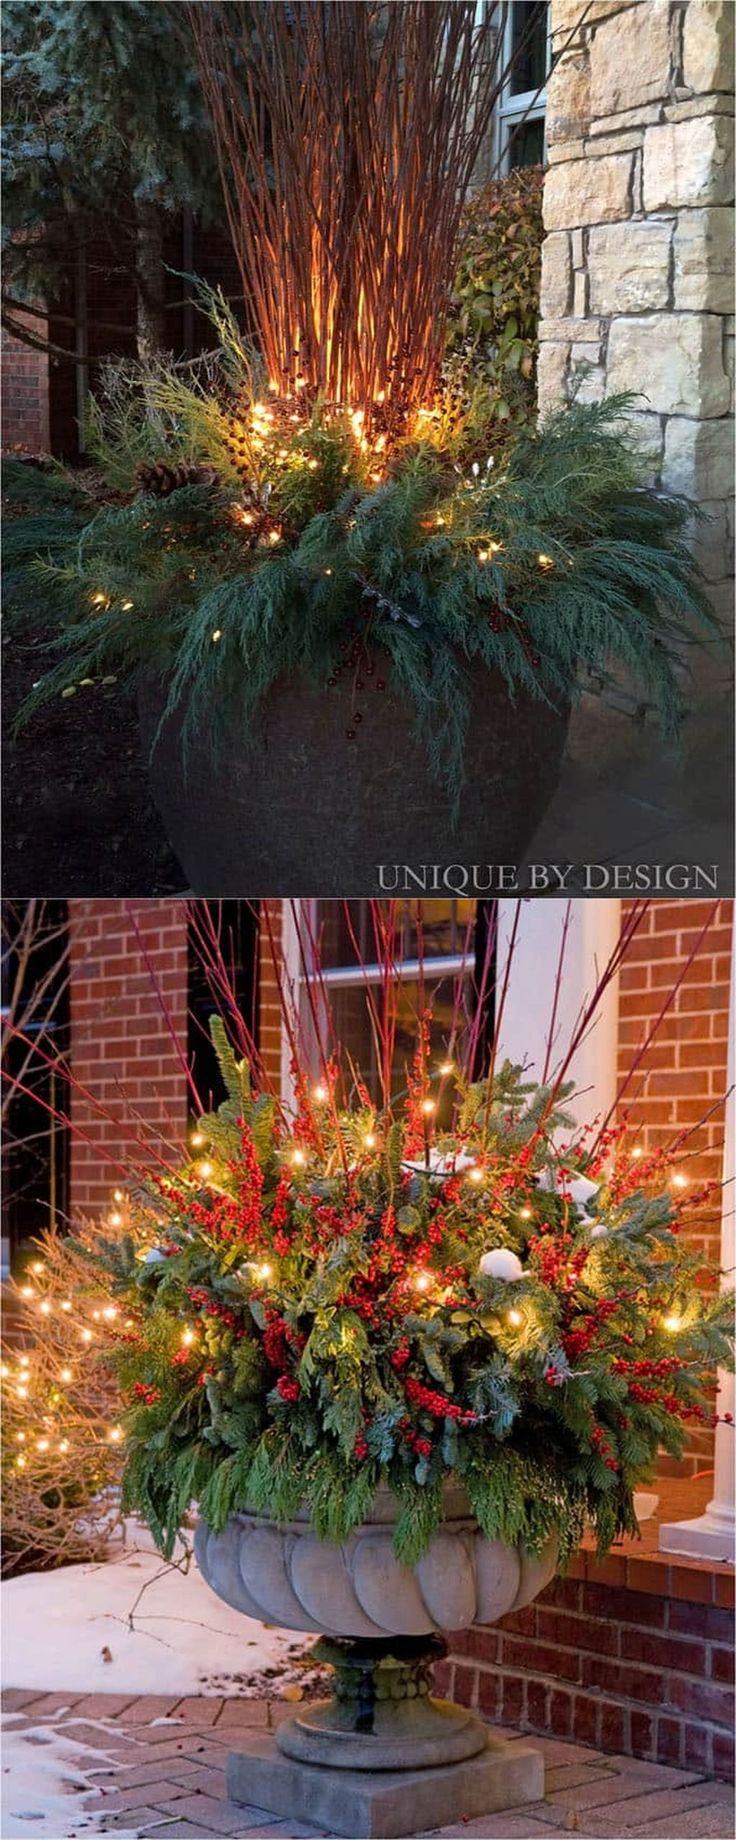 Best Outdoor Lighted Christmas Decorations Ideas On Pinterest - Outdoor christmas decoration ideas